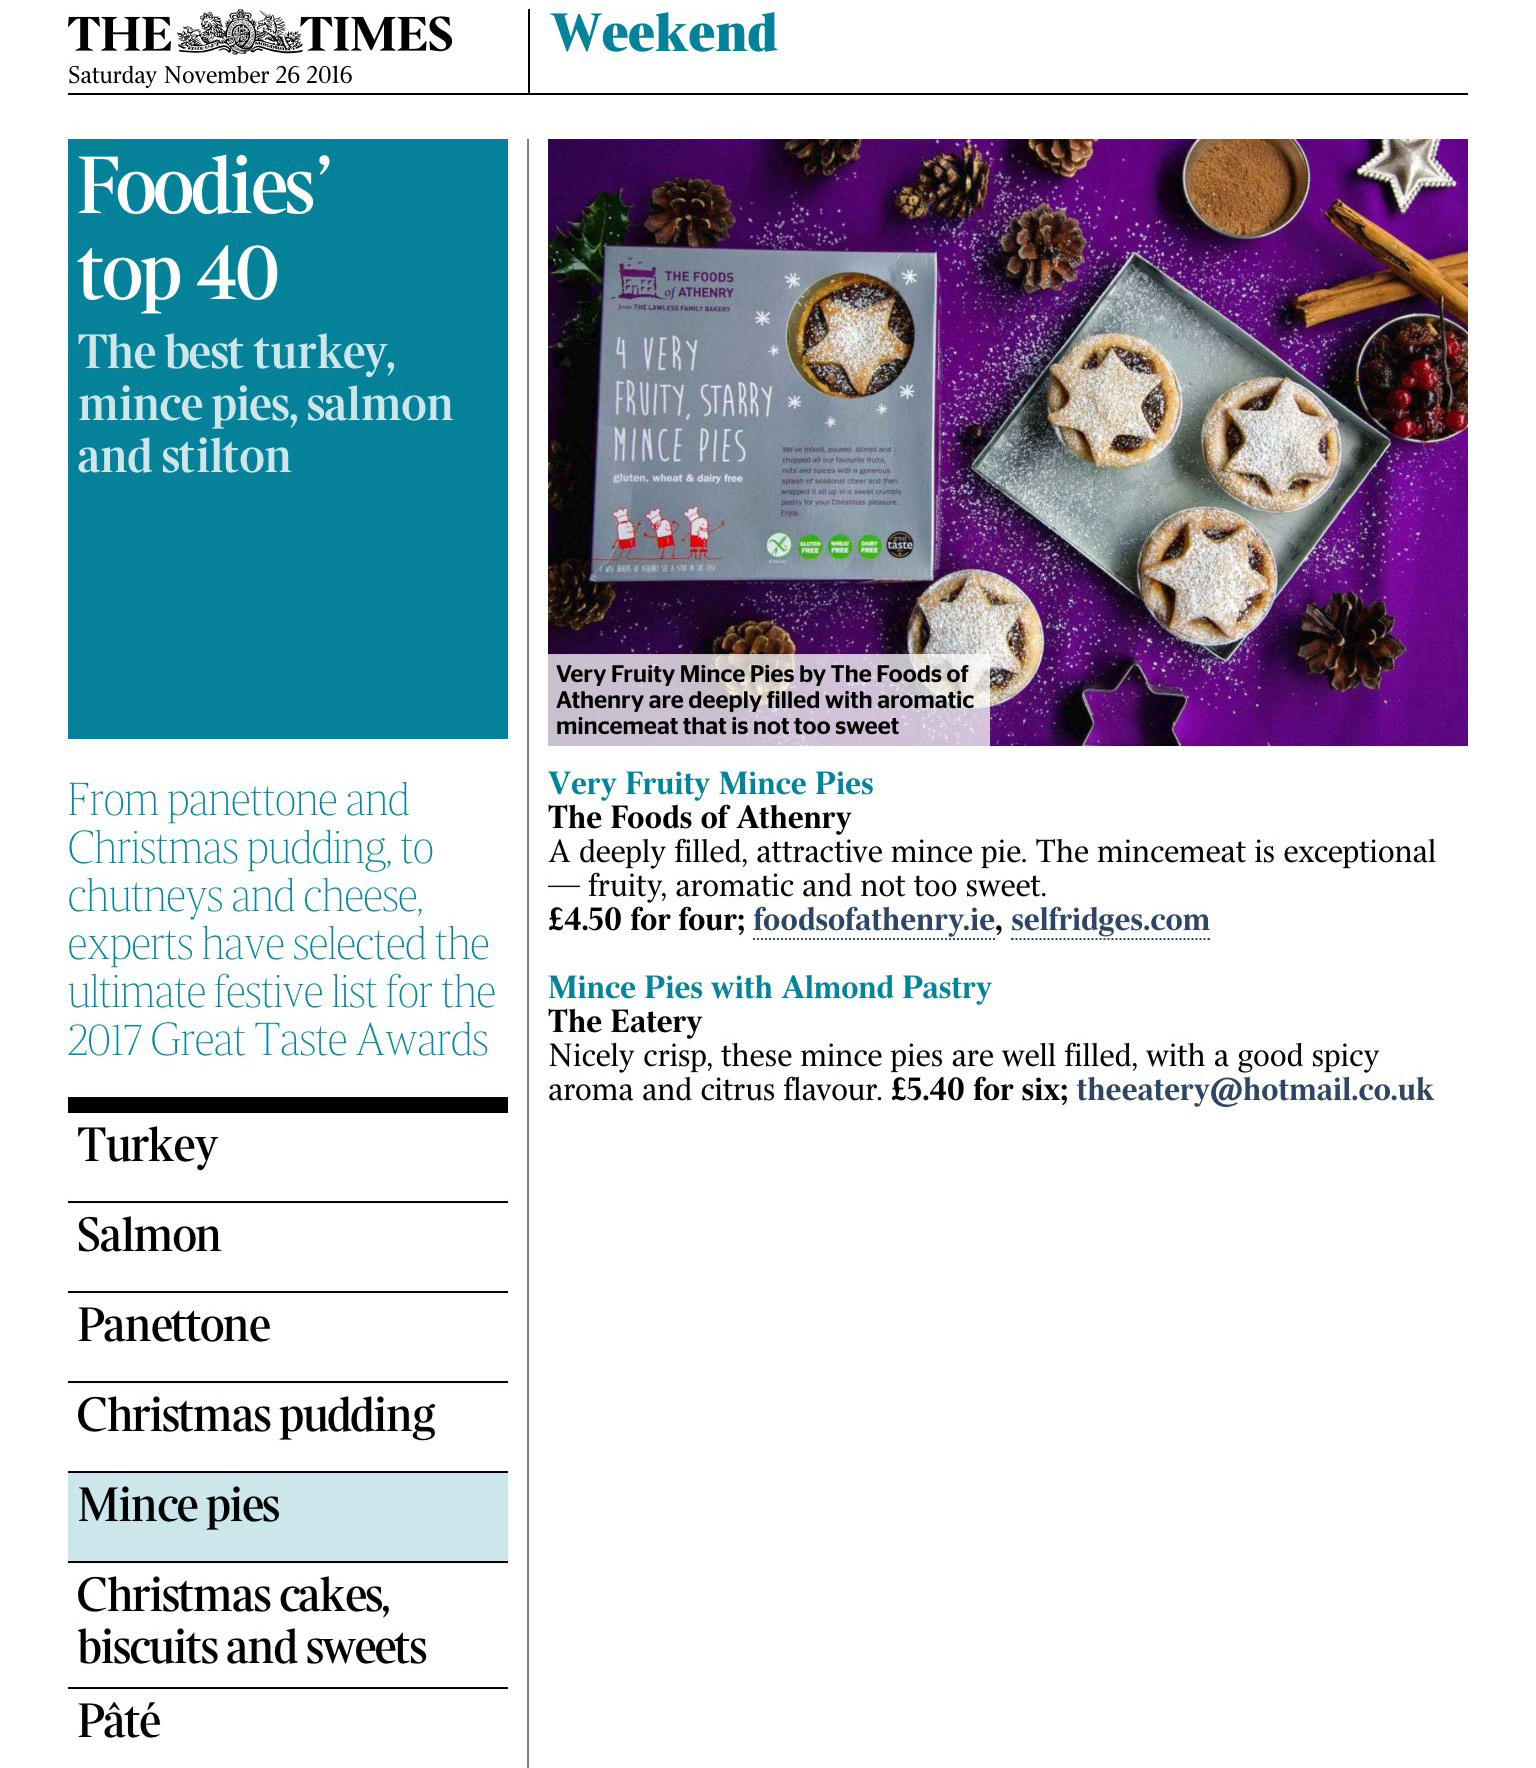 Foodies top 40 The Times